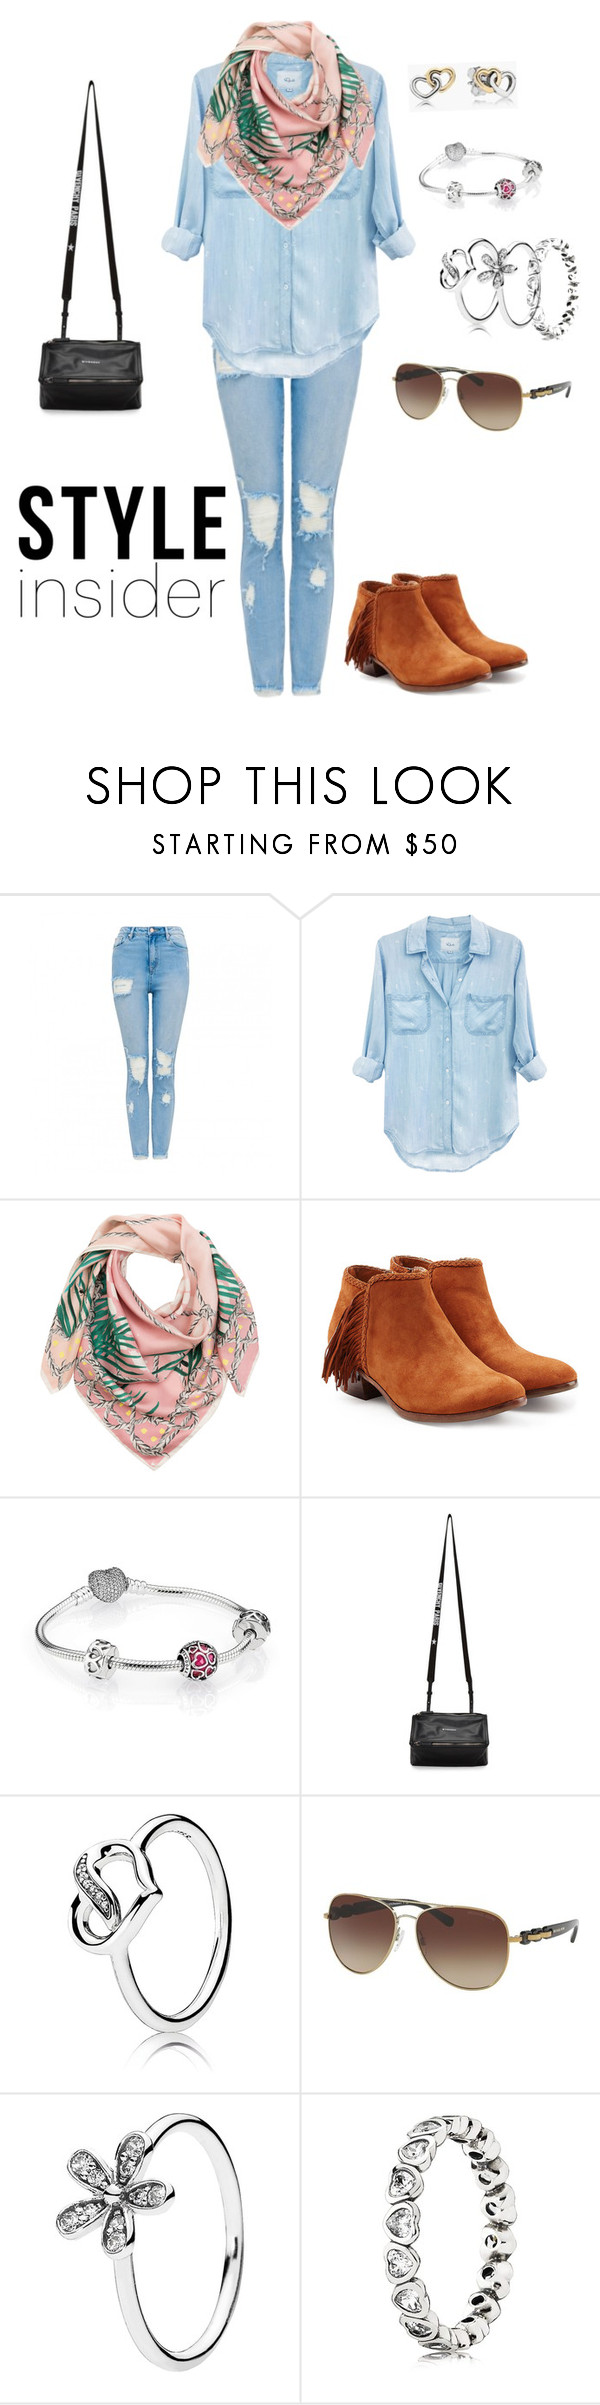 """Style insider"" by gamosefashion on Polyvore featuring Rails, Sam Edelman, Pandora, Givenchy and Michael Kors"